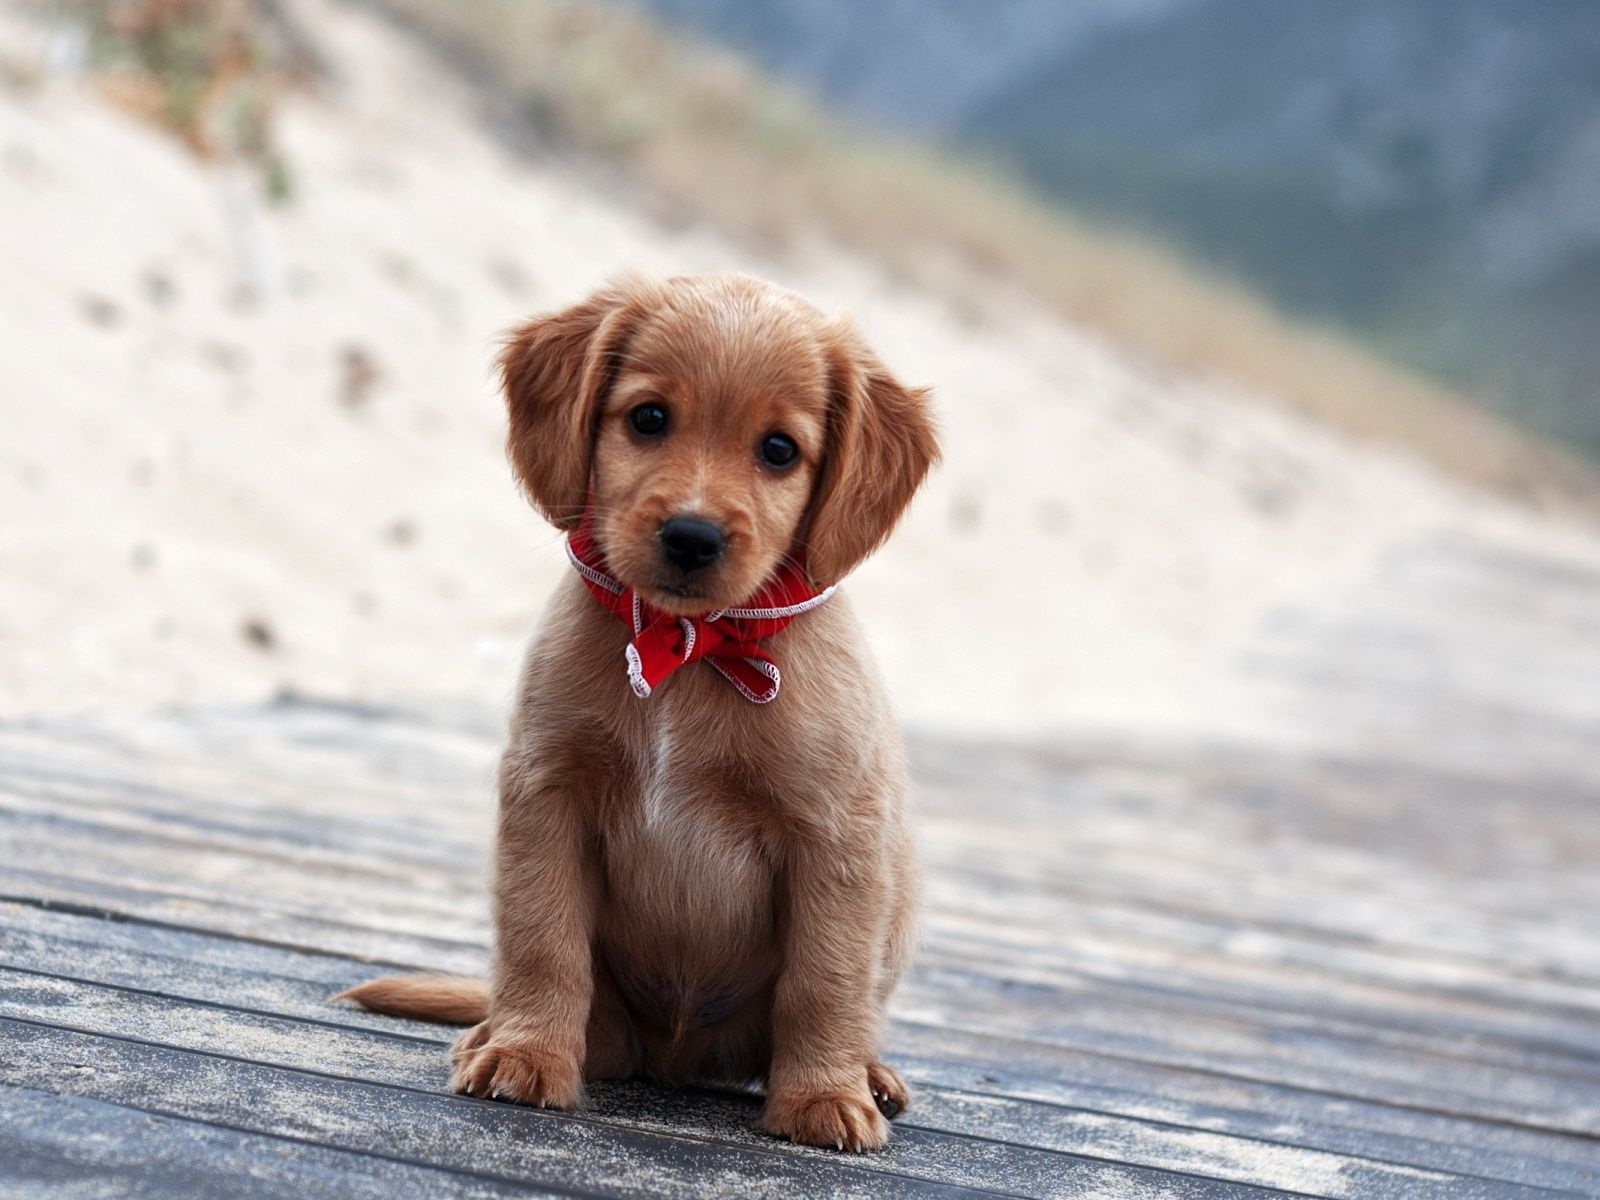 Cute And Adorable Puppy Pictures Cute Animals Cute Puppy